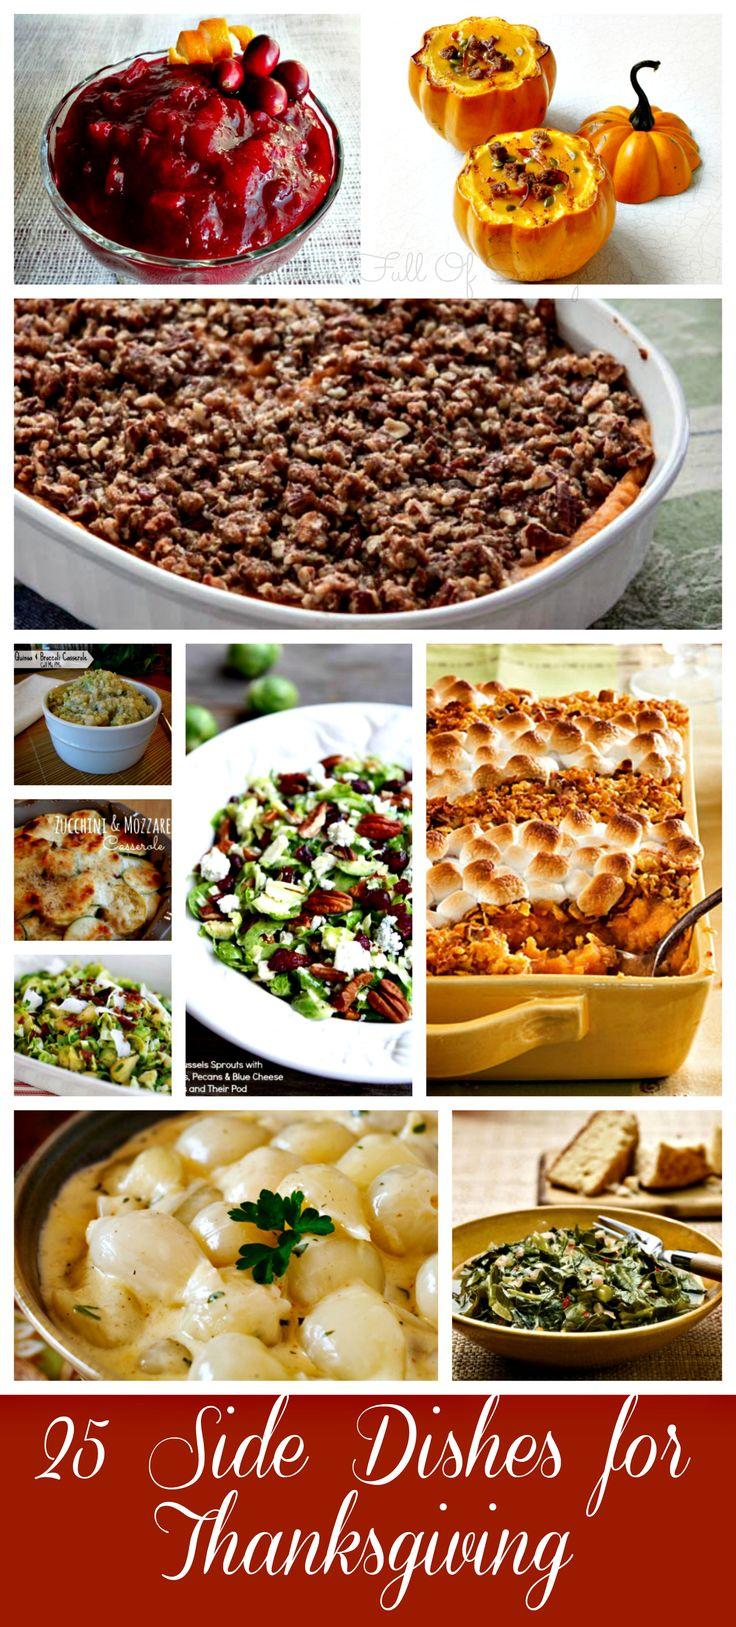 25 side dishes for thanksgiving- get new ideas this year-- Check out some of the best recipes across the Web. Find the perfect side dish for Thanksgiving.